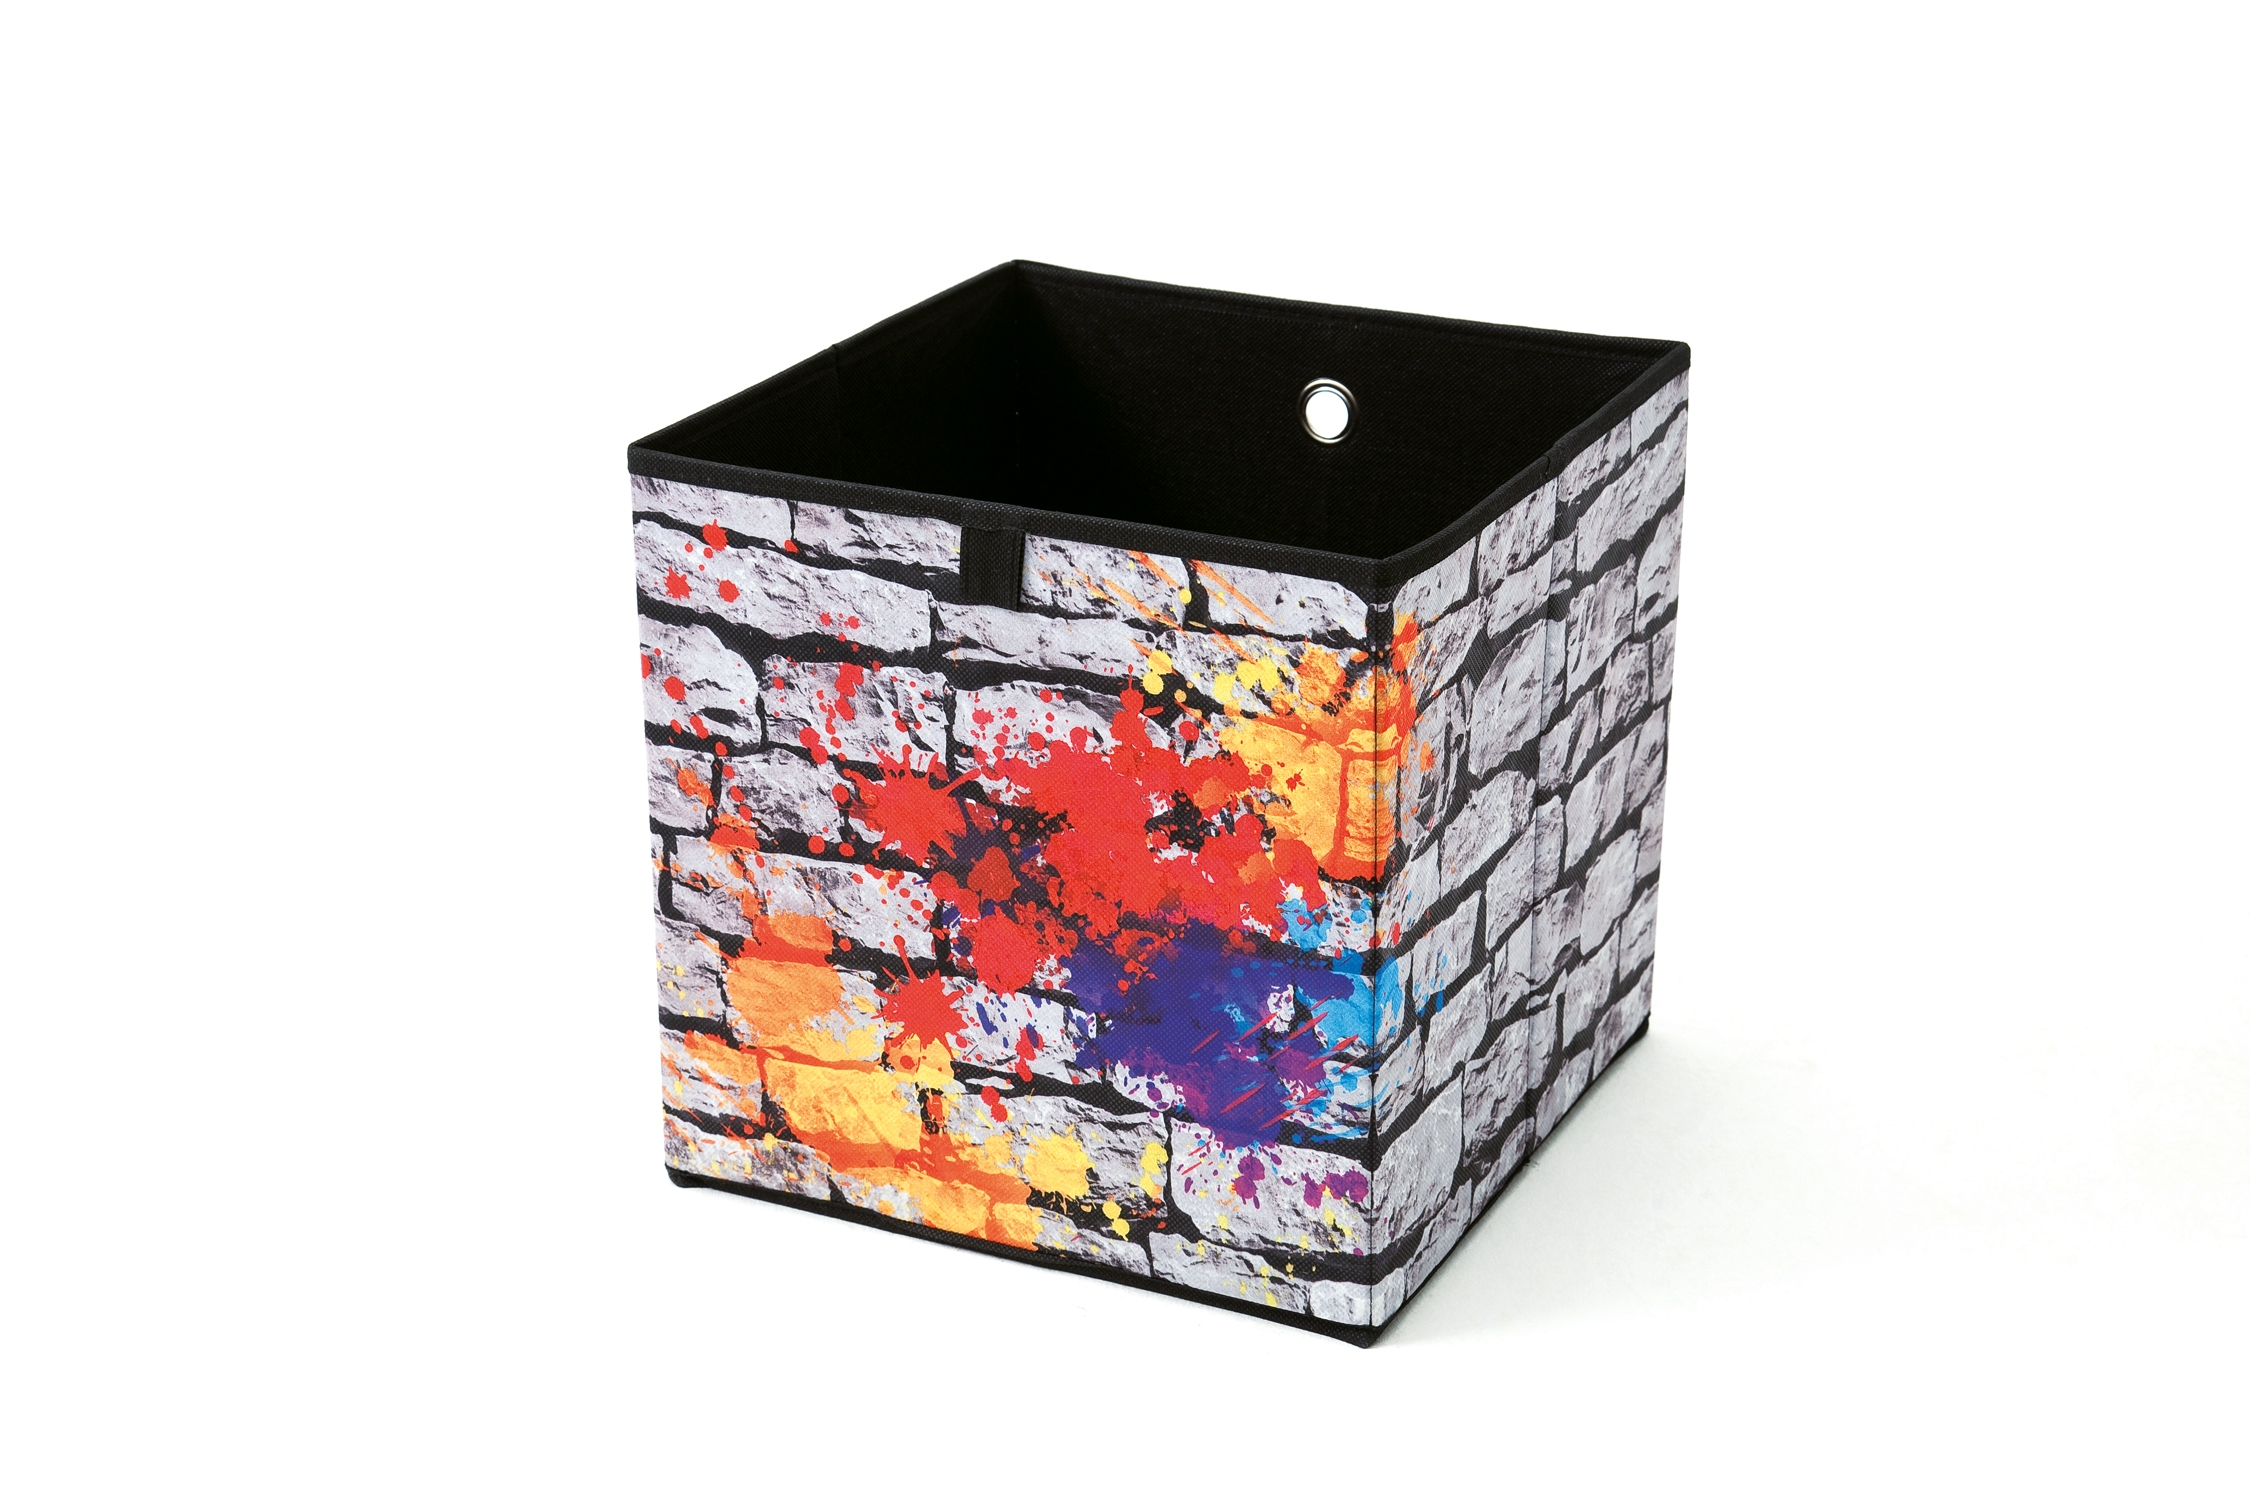 faltbox graffiti grau bunt kunststoffbxhxt 32x32x32 cm ebay. Black Bedroom Furniture Sets. Home Design Ideas